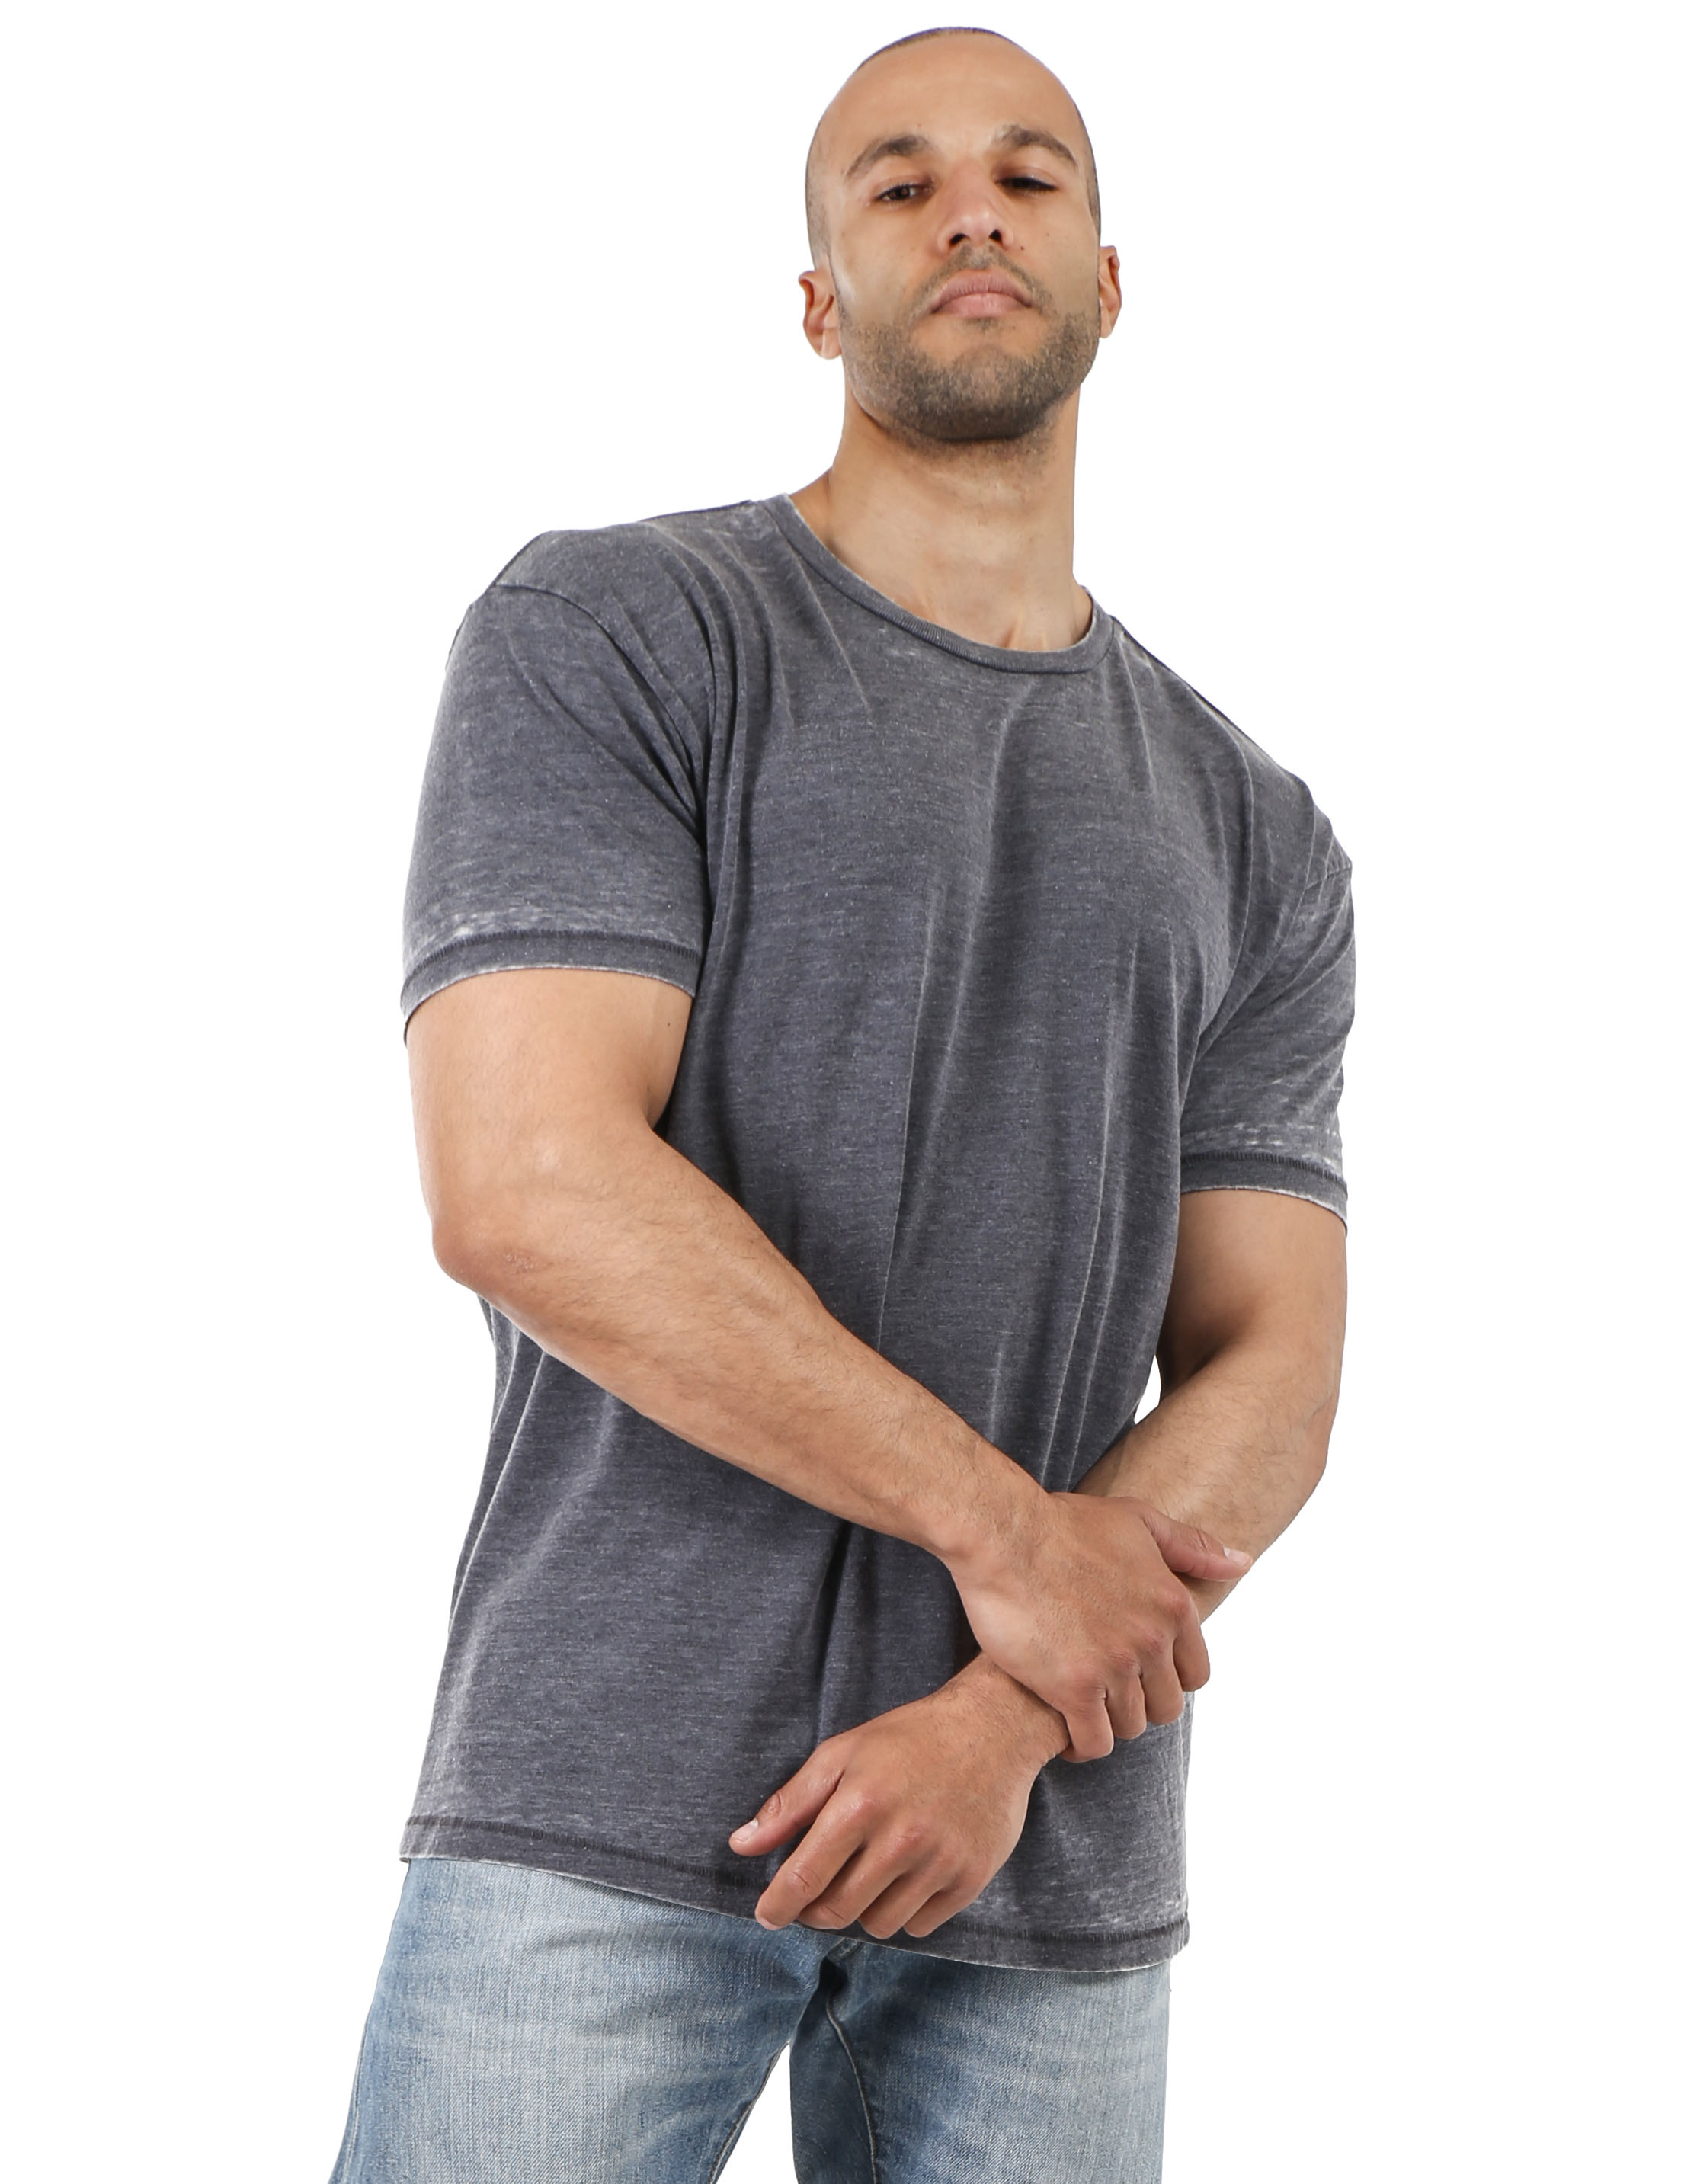 Mens-Vintage-T-Shirts-Washed-Burnout-Fade-Short-Sleeve-Basic-Crew-Neck-Tee thumbnail 3